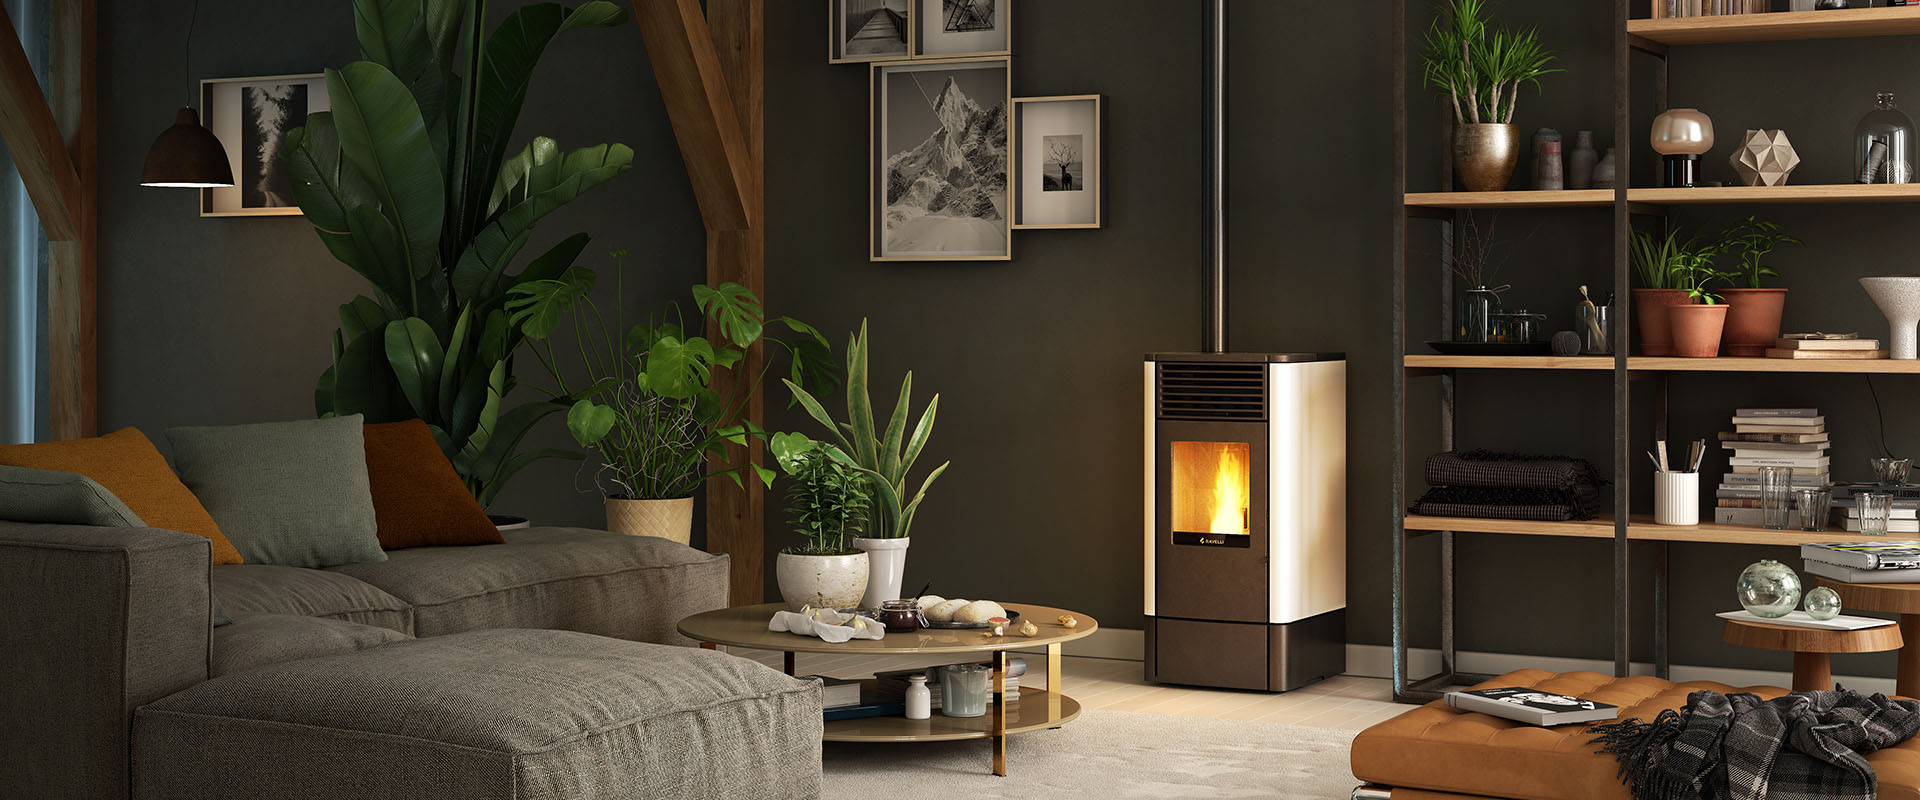 Smartheat - Ducted Pellets Stoves - Ravelli Flow Pellet Stoves - For uniform circulation of the heat